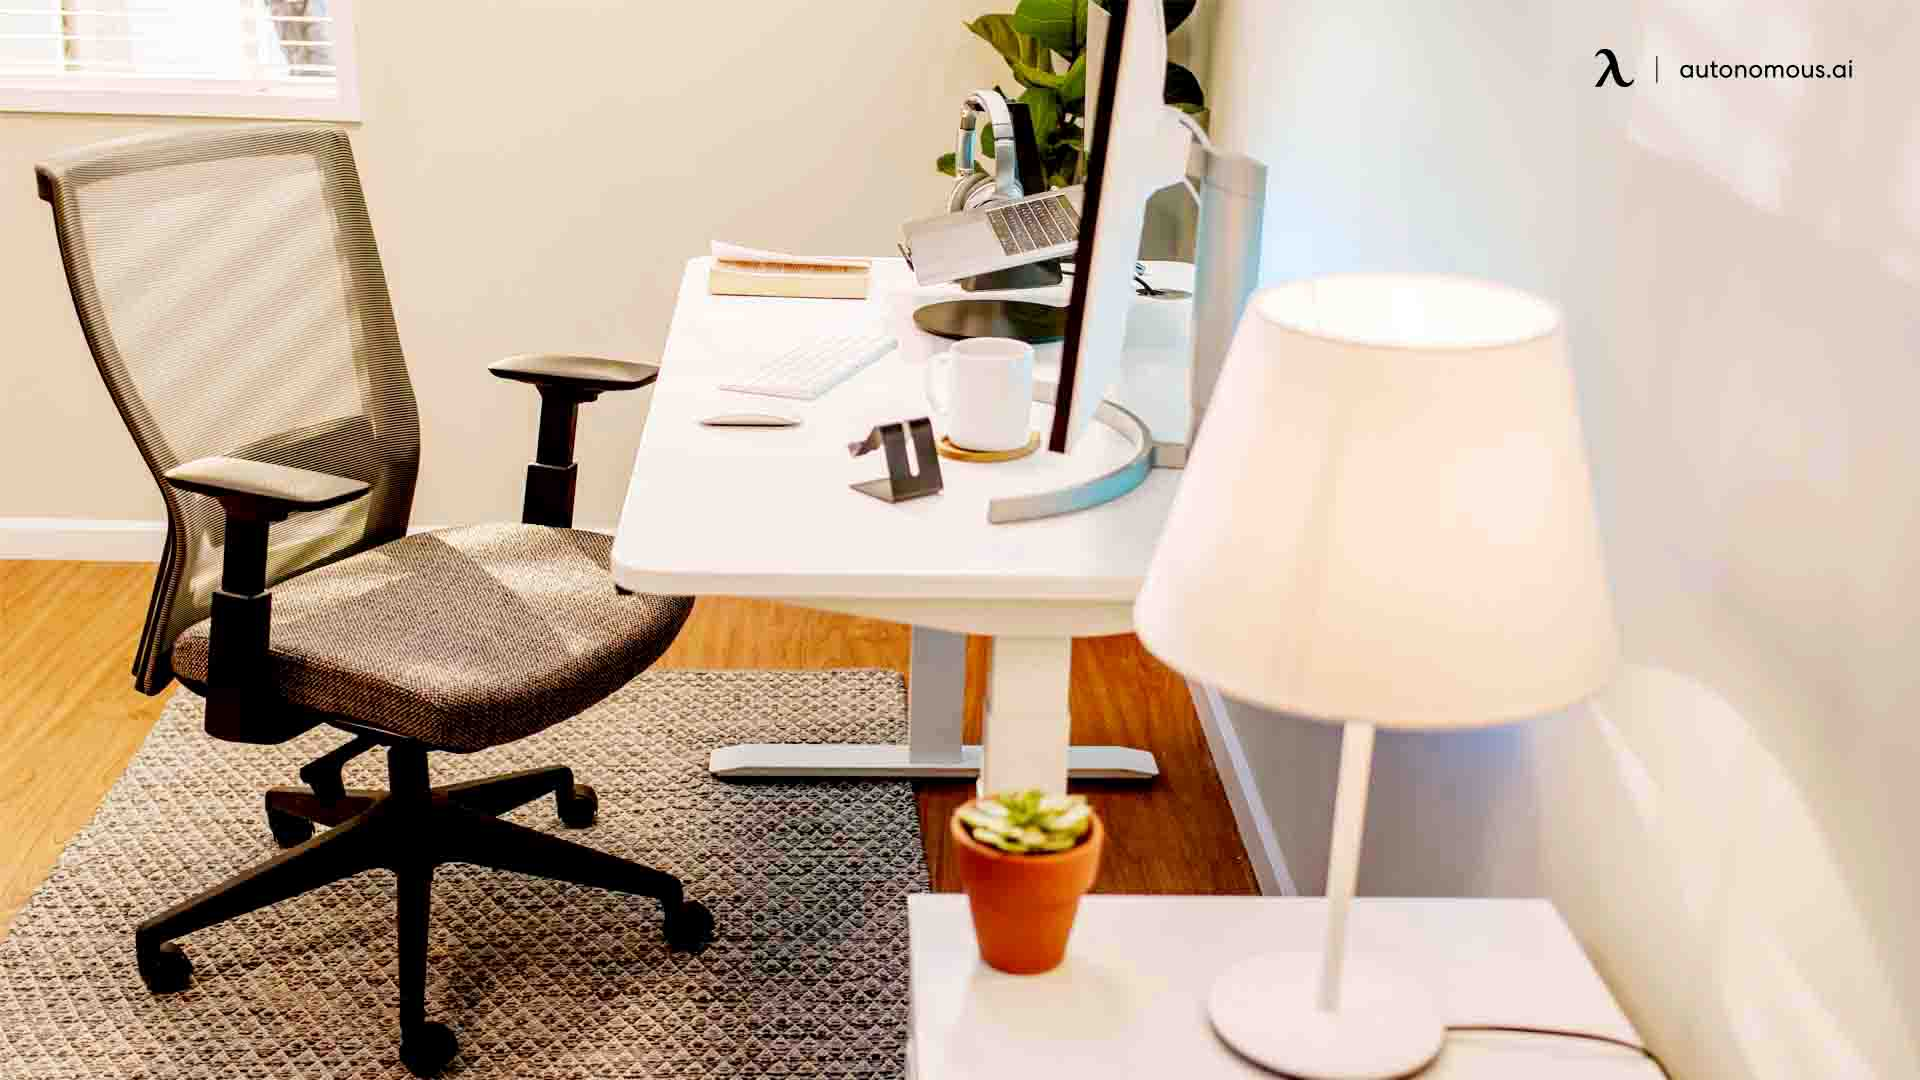 Ergonomic Chair as work from home equipment